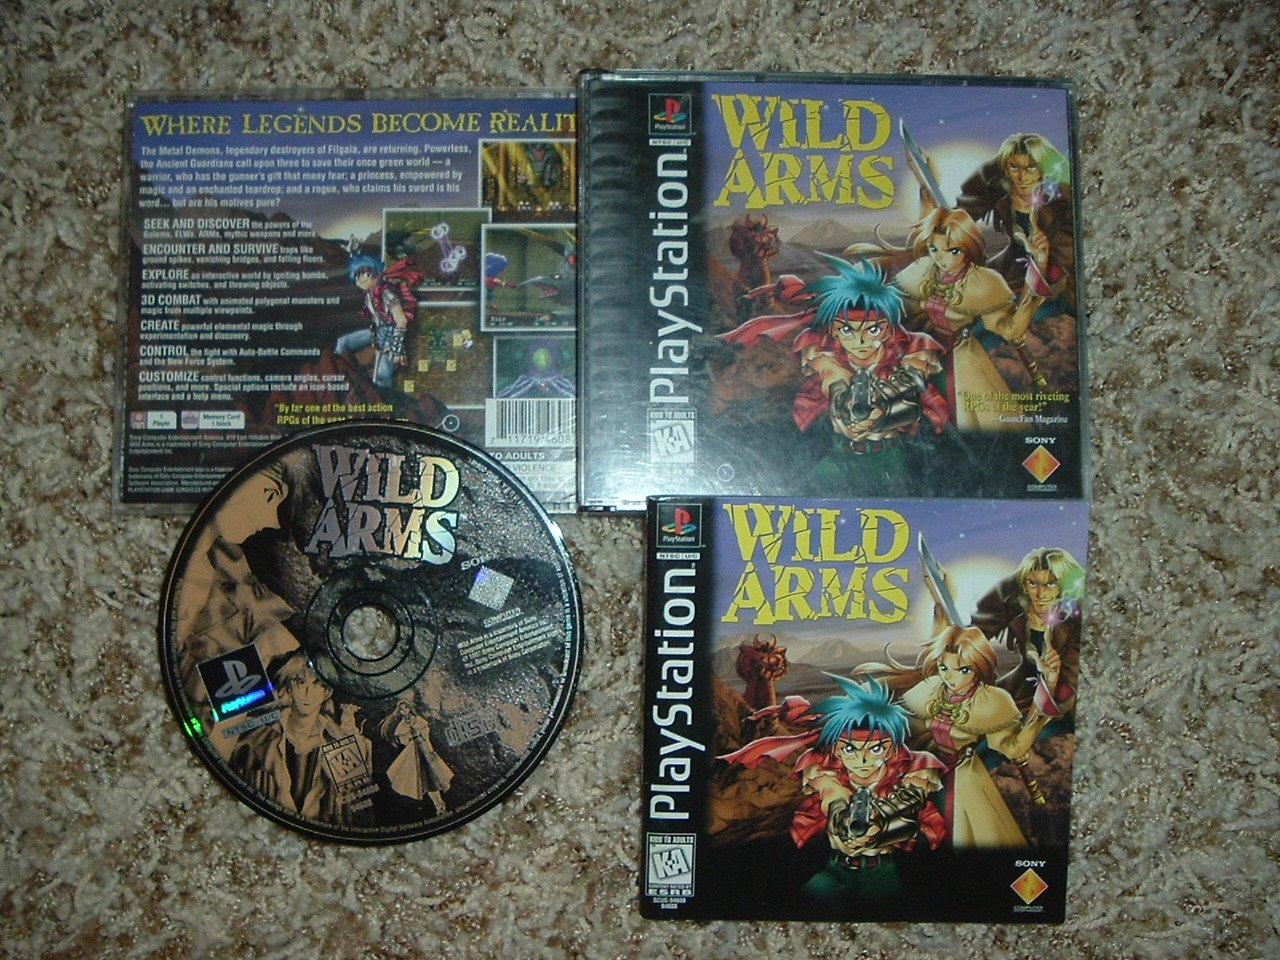 Wild Arms Sony Playstation Ps1 100 Complete In Case Rpg